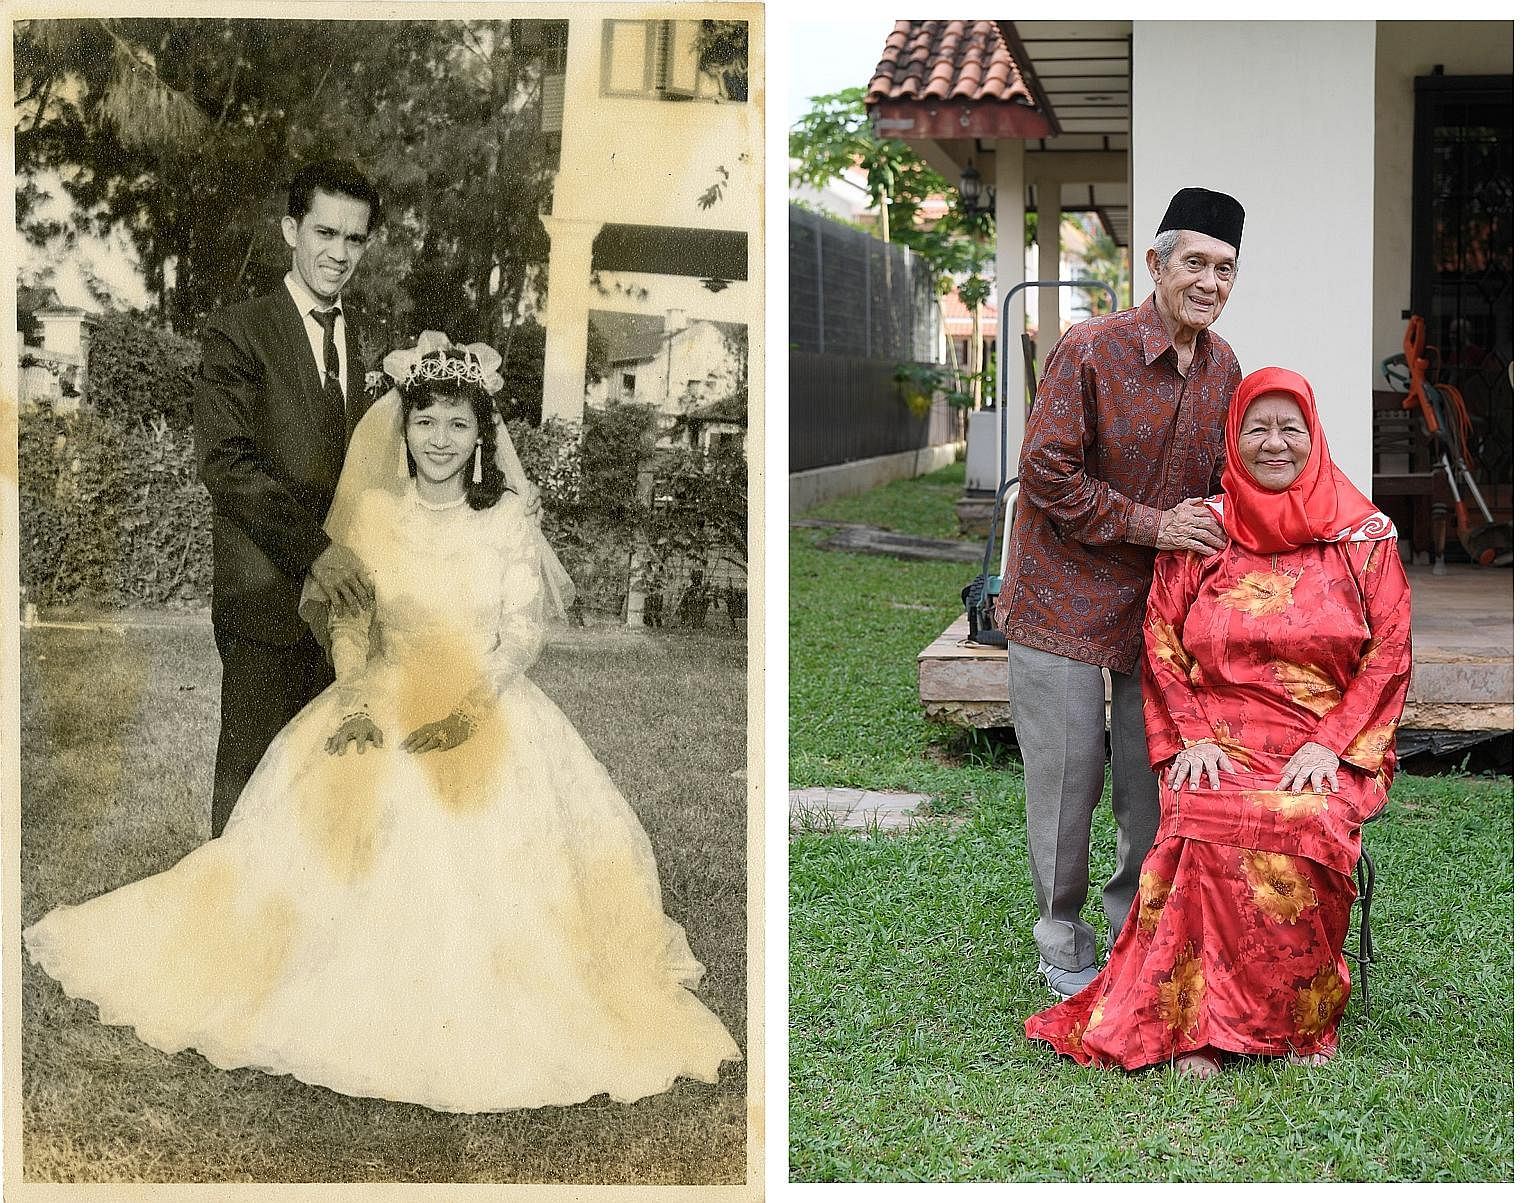 Mr Shahab and Madam Alsagoff at the bride's childhood home in Wareham Road, where they held their wedding celebrations in October 1961 (left), and the couple today. They first saw each other at a seaside event in Marine Parade.